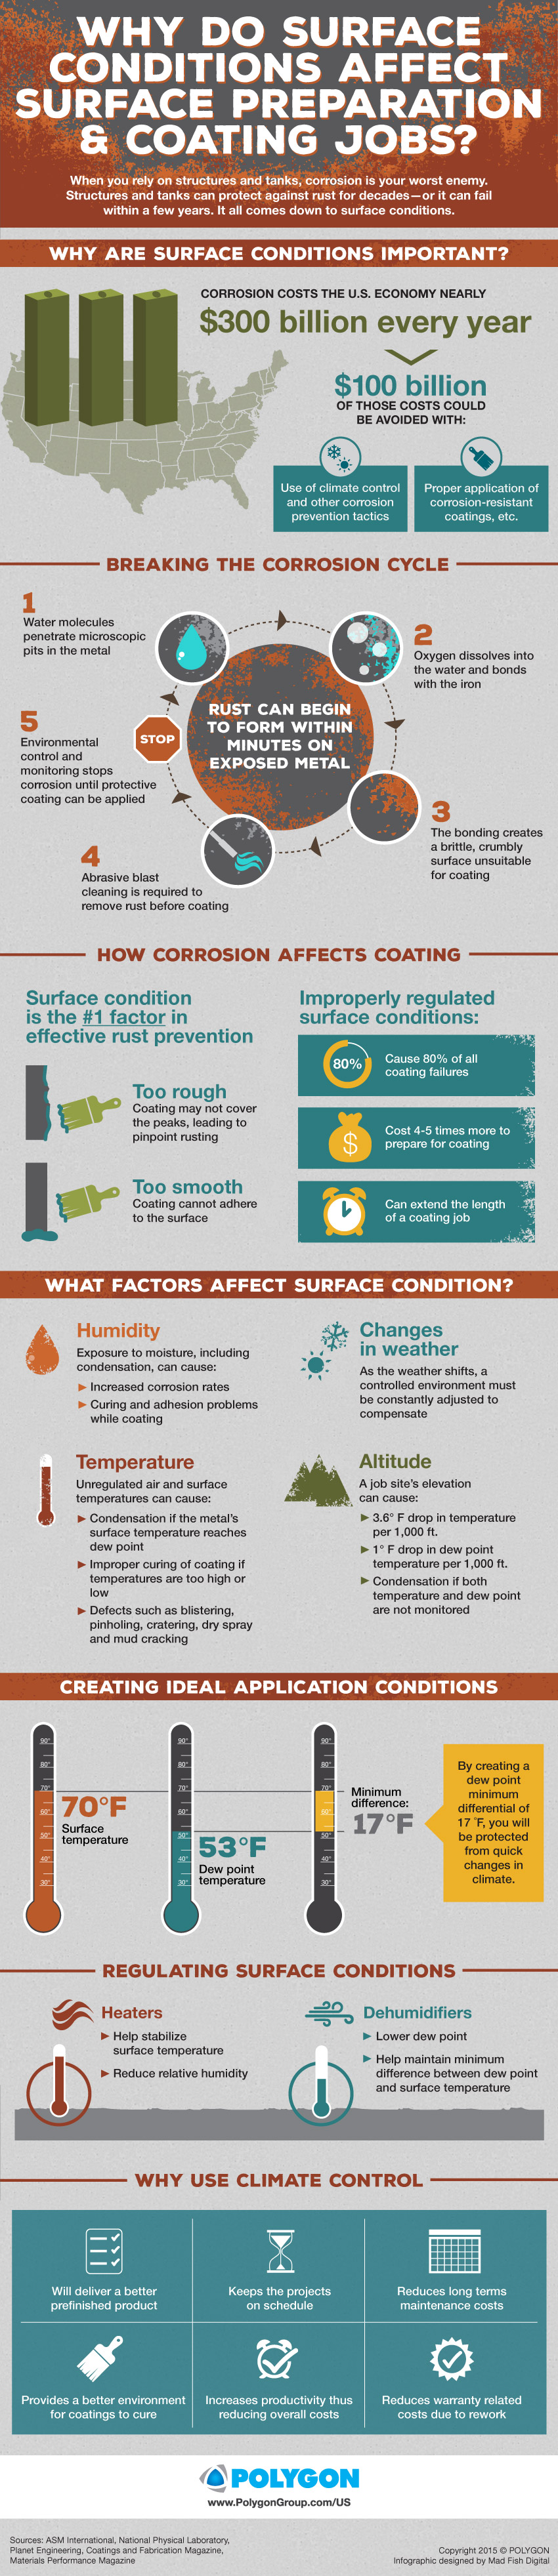 Why do surface conditions affect surface preparation & coating jobs